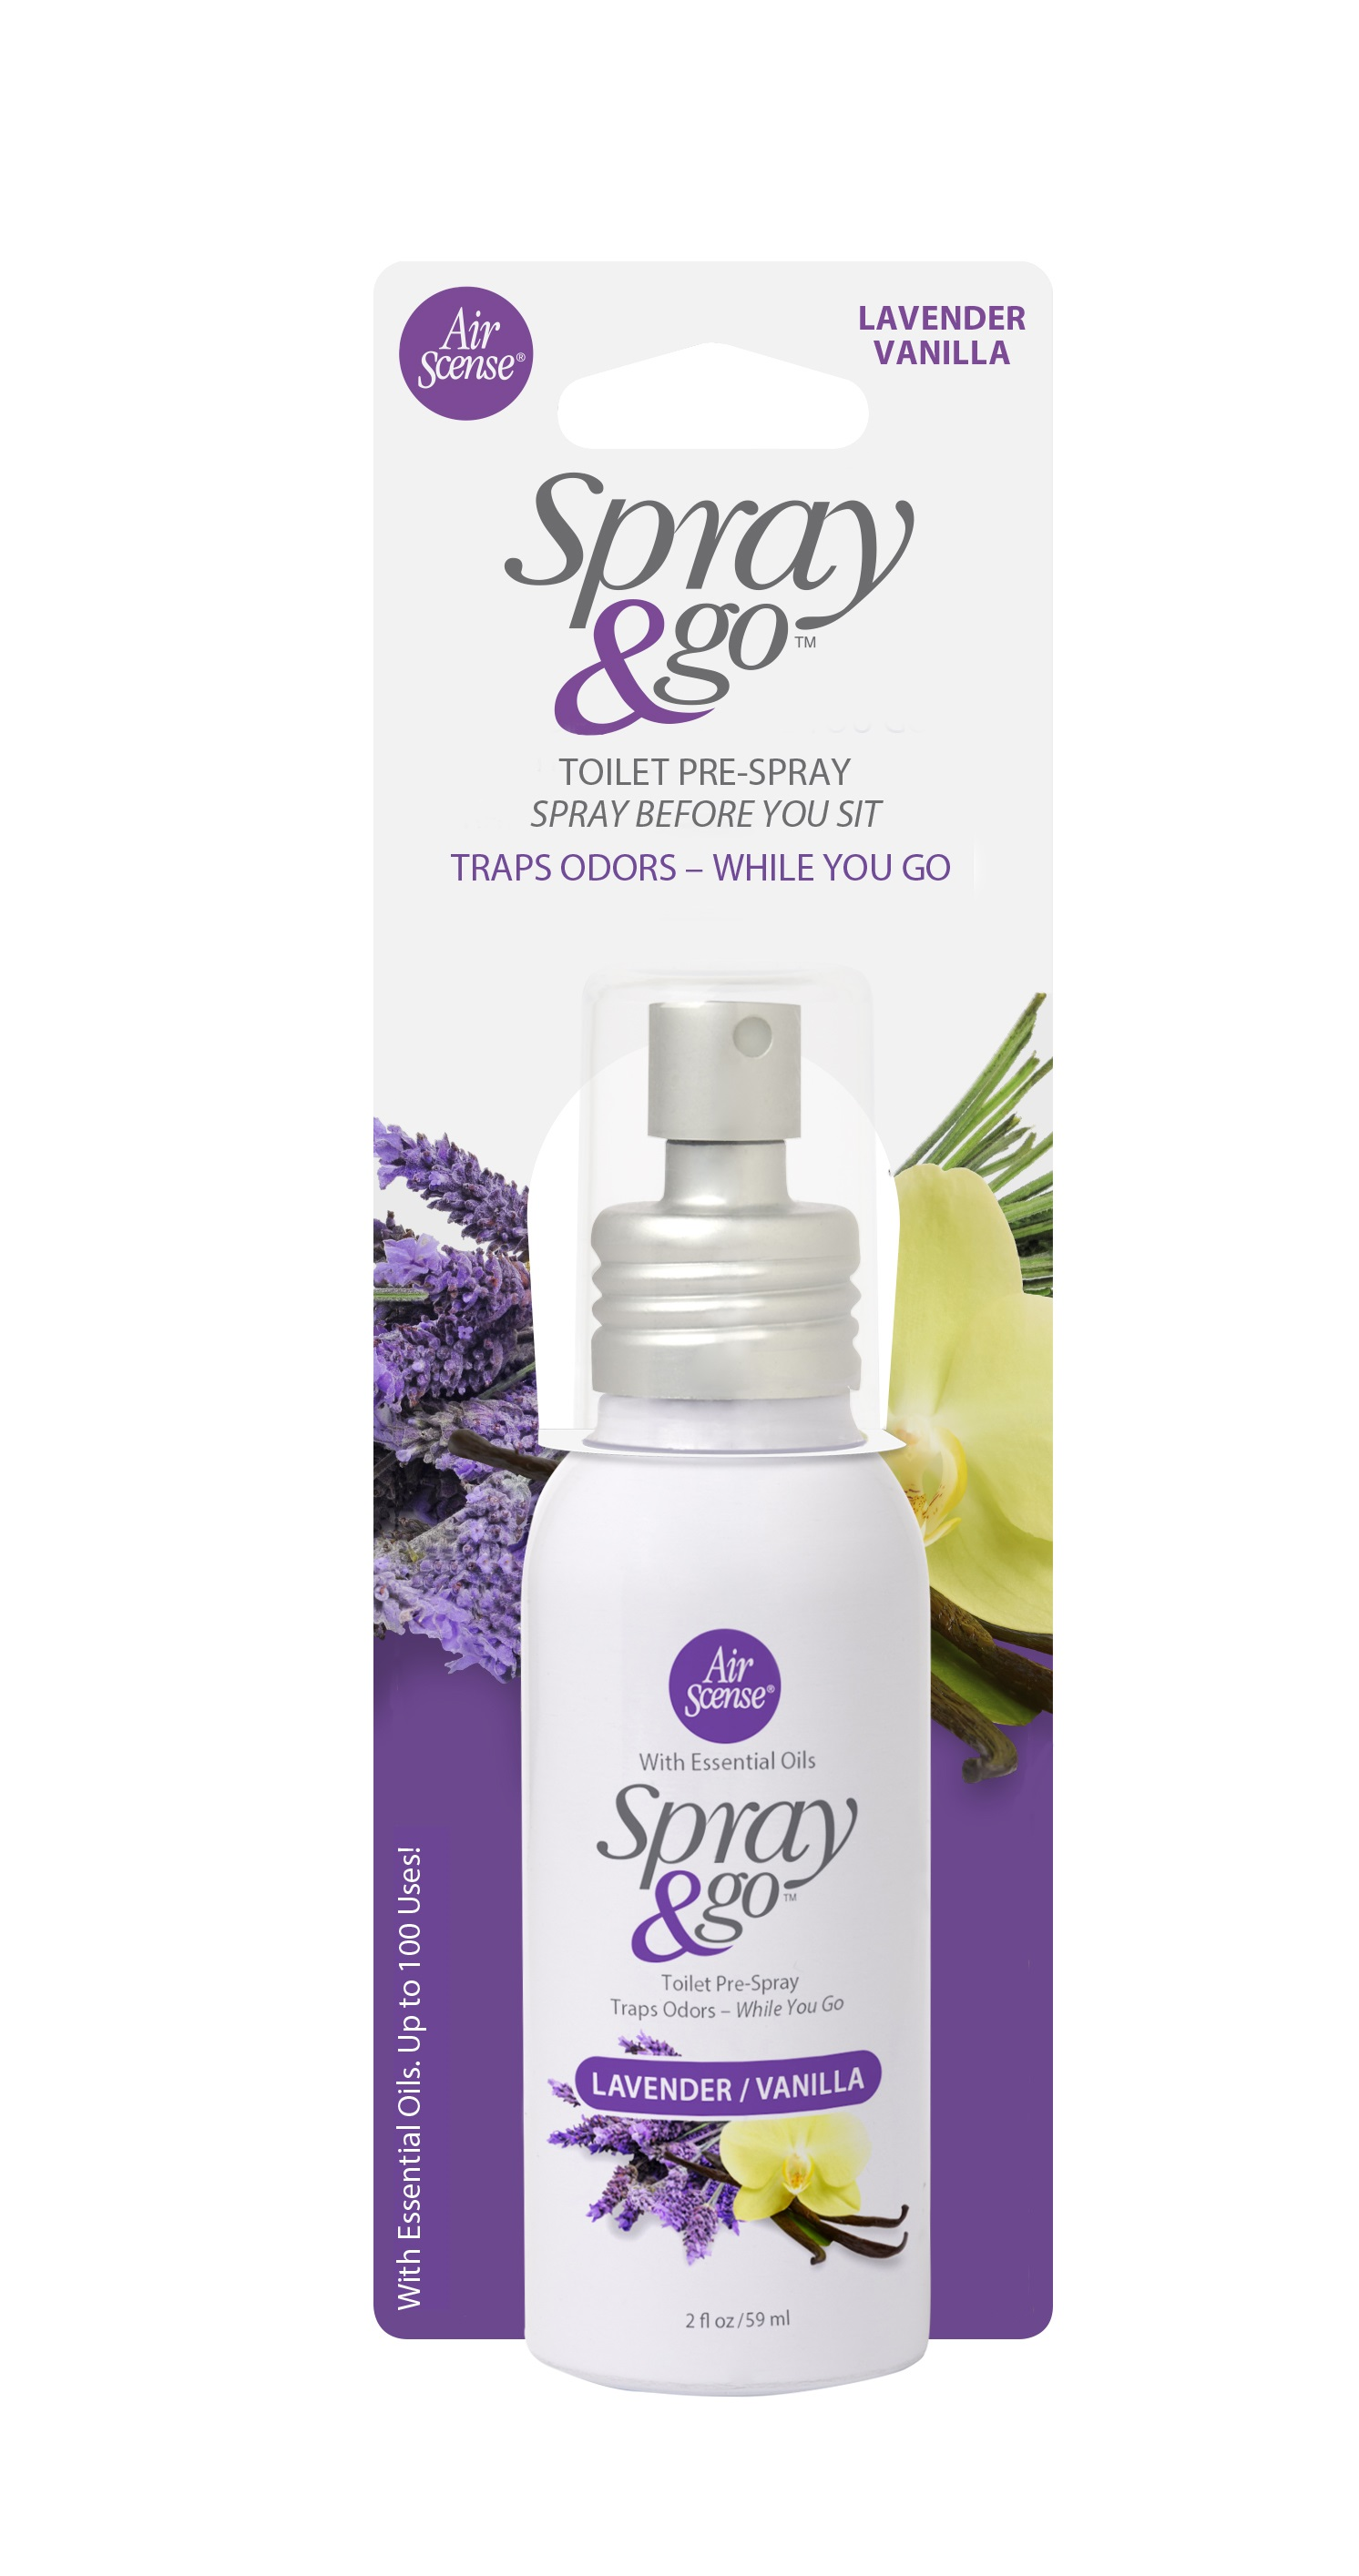 Spray & Go Lavendar